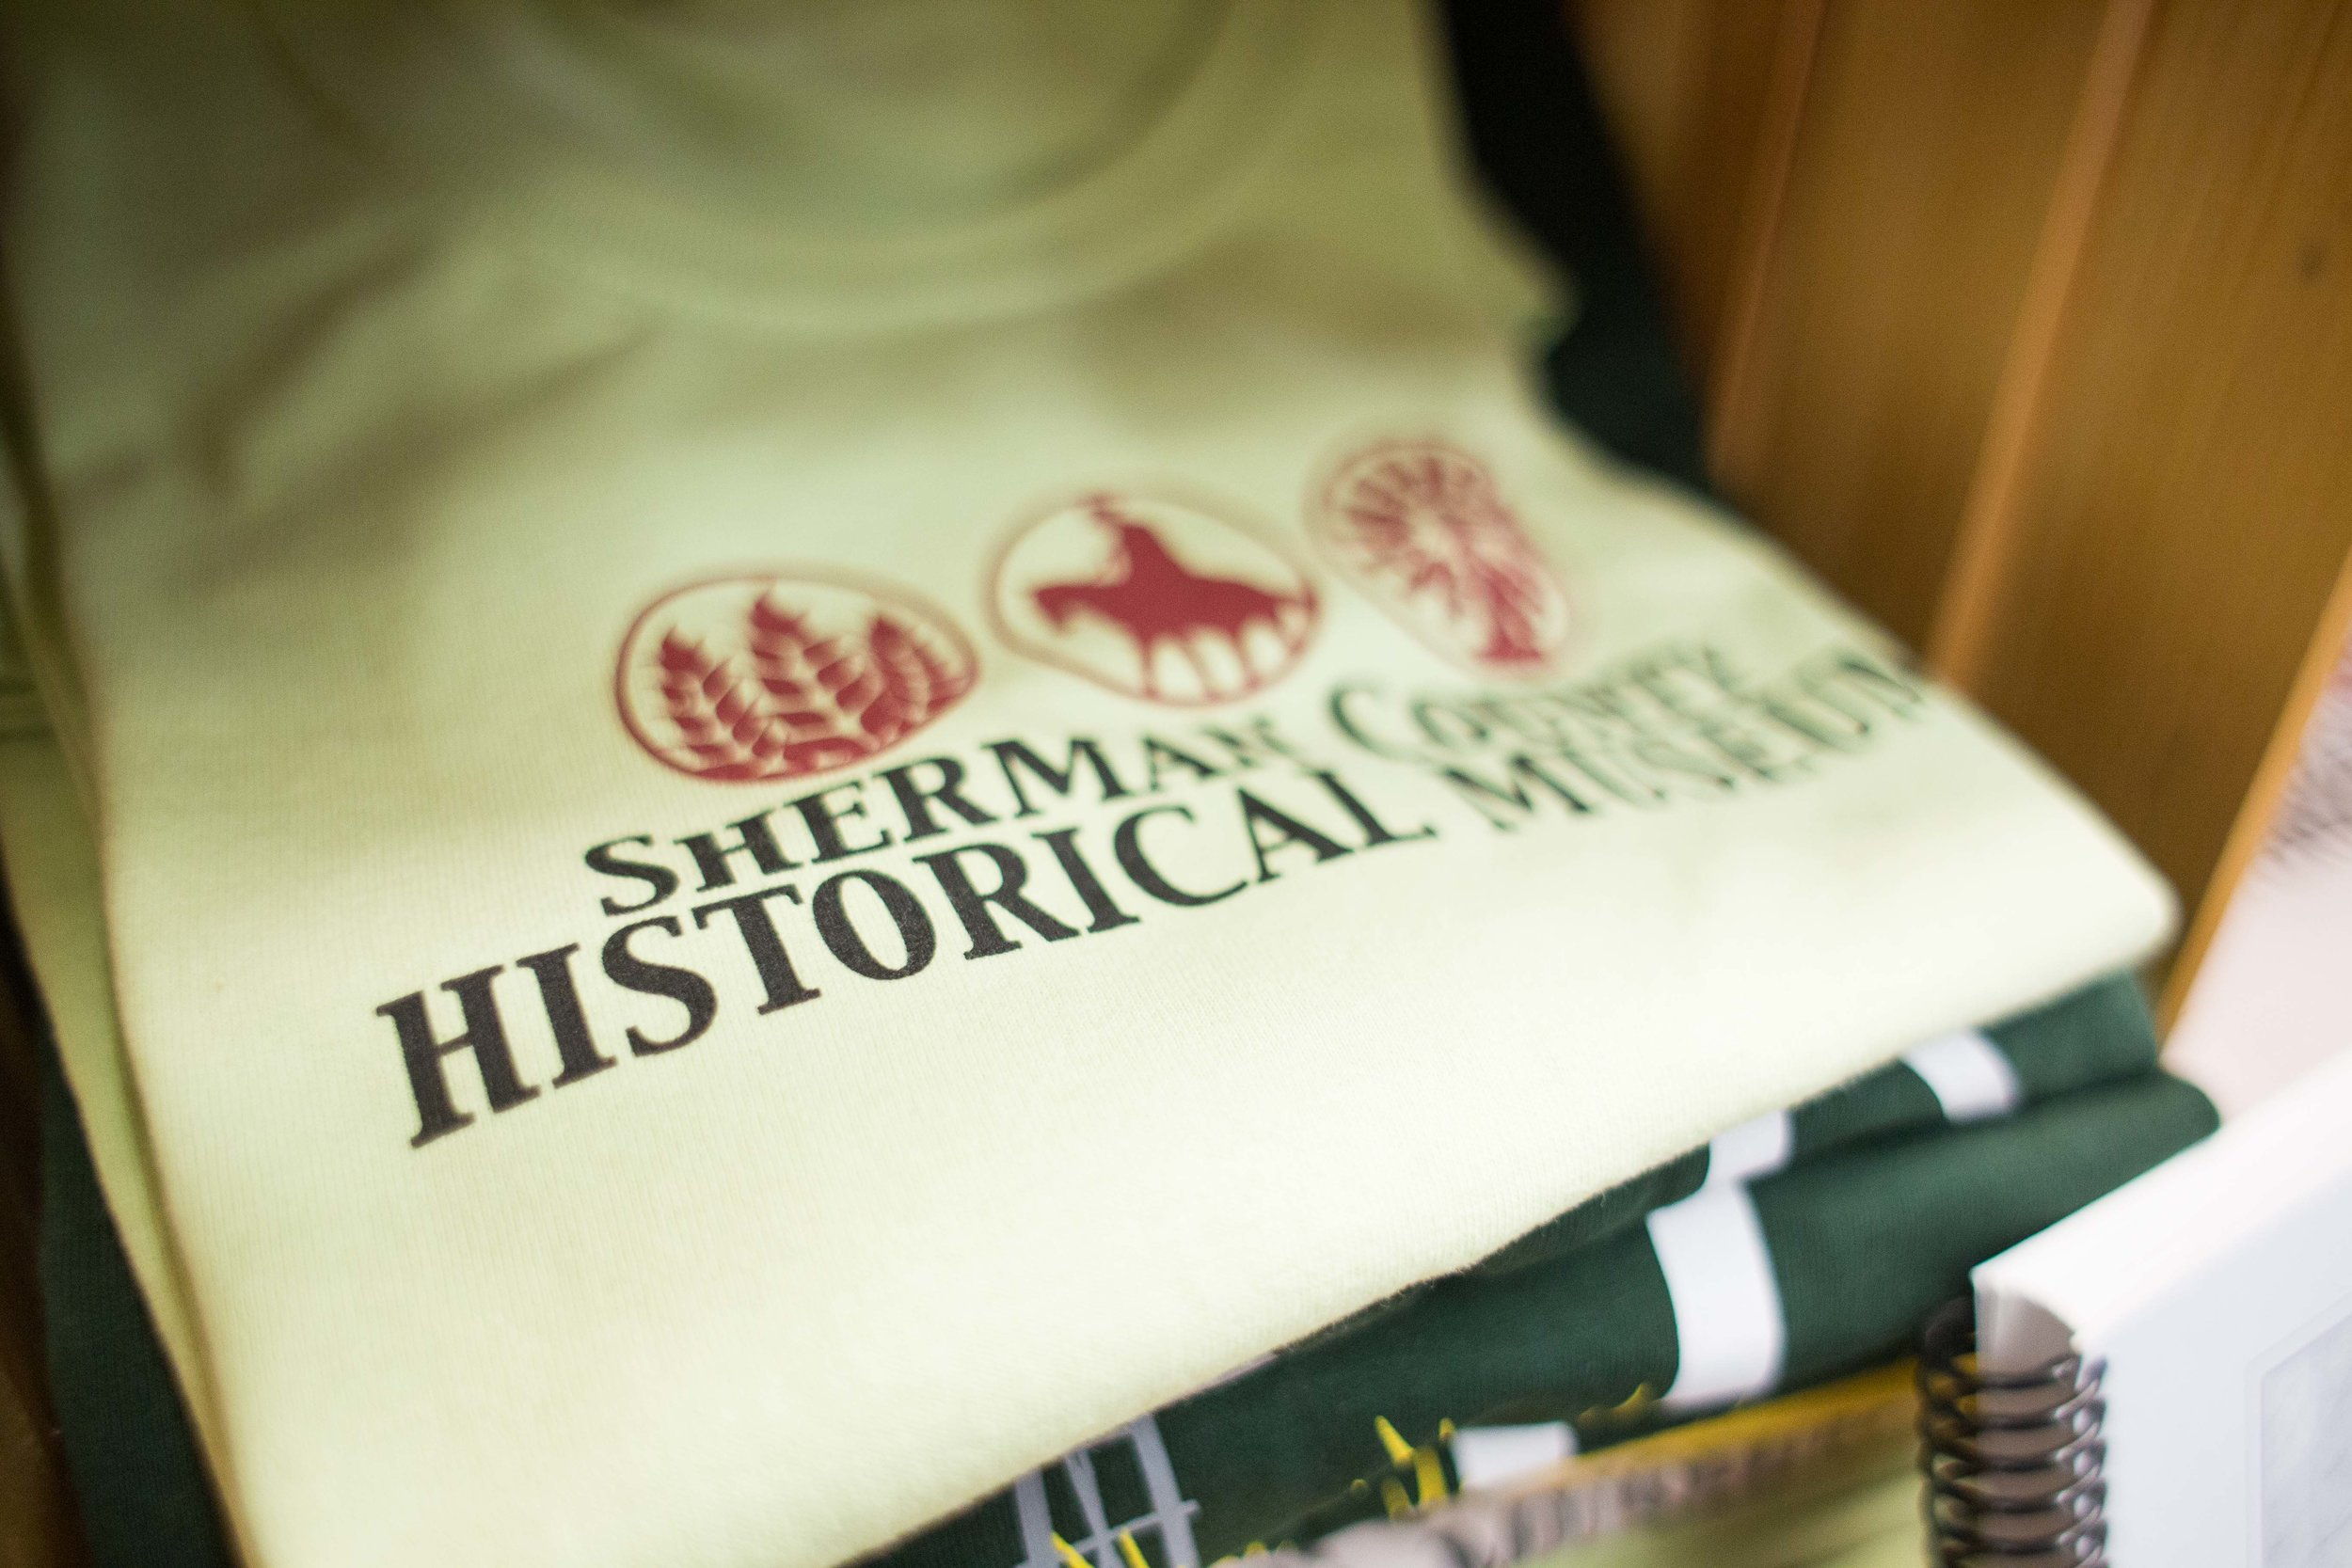 Sherman County Musuem Photos Websites Immense Imagery Photography Wheat Rural History Oregon Moro-177.jpg